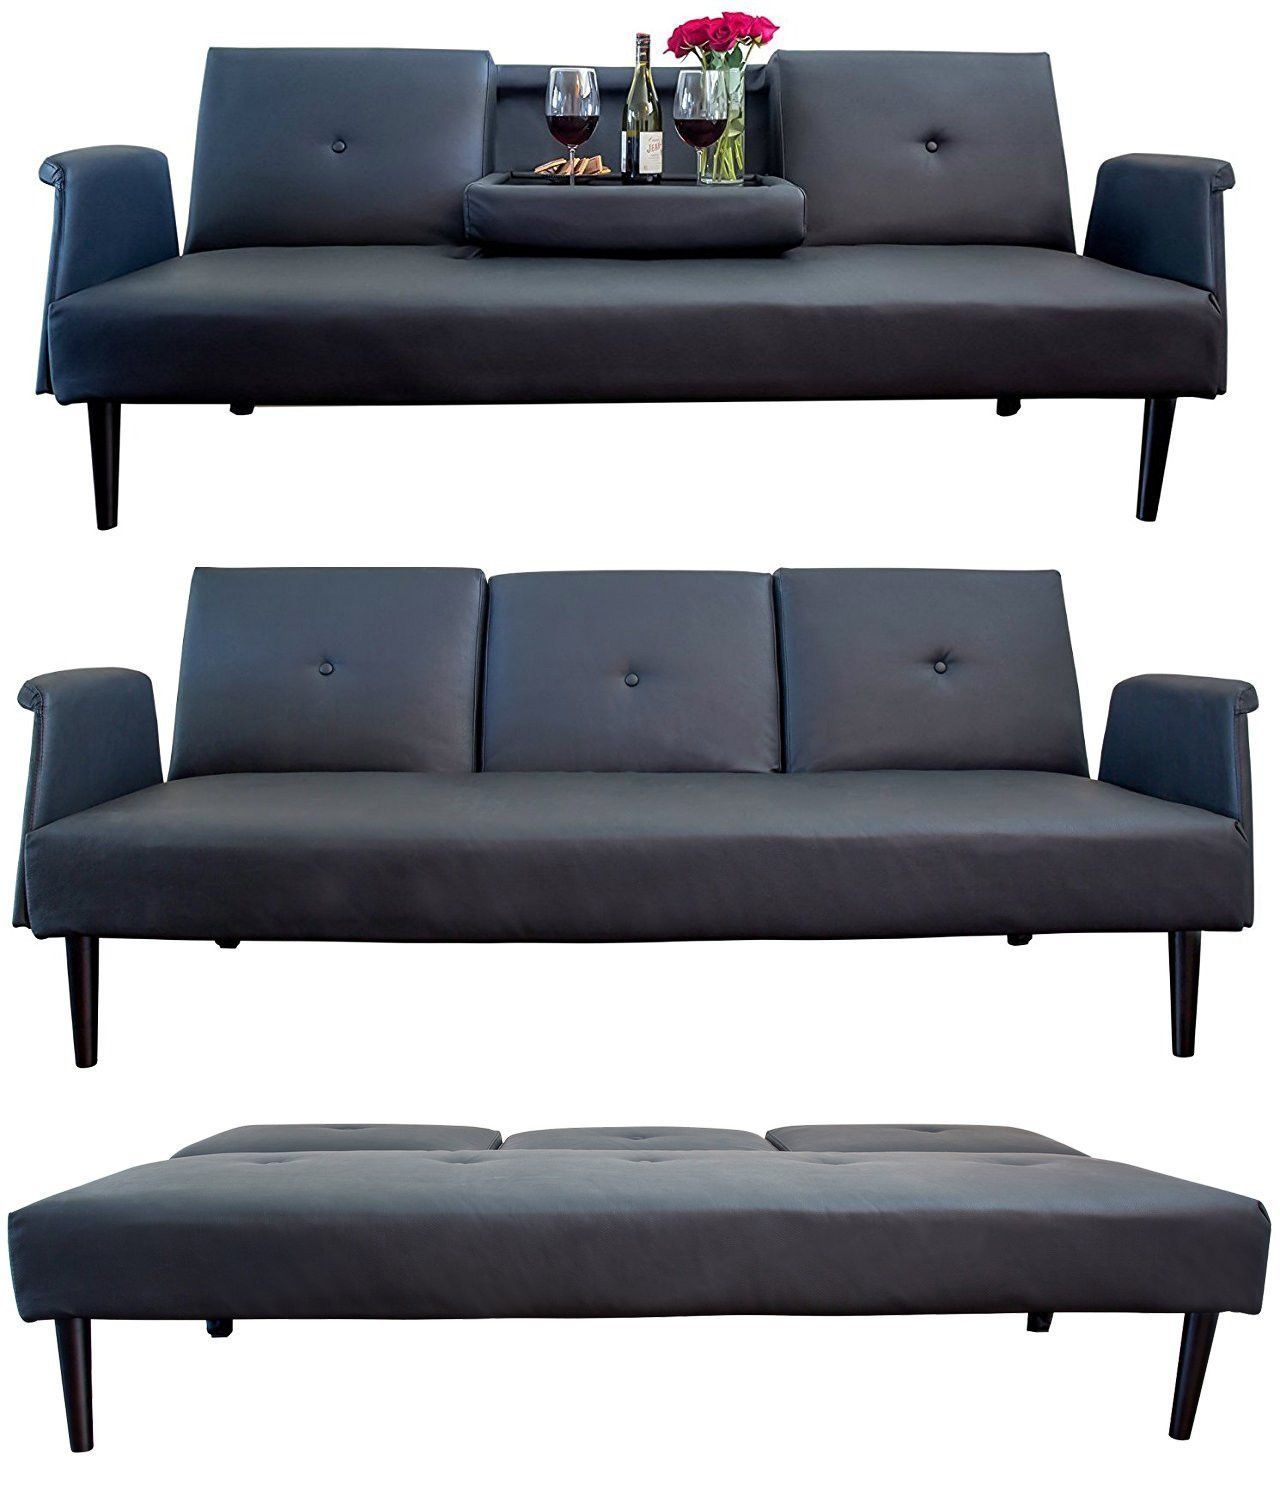 Leather Sofa Bed W Tray And Cup